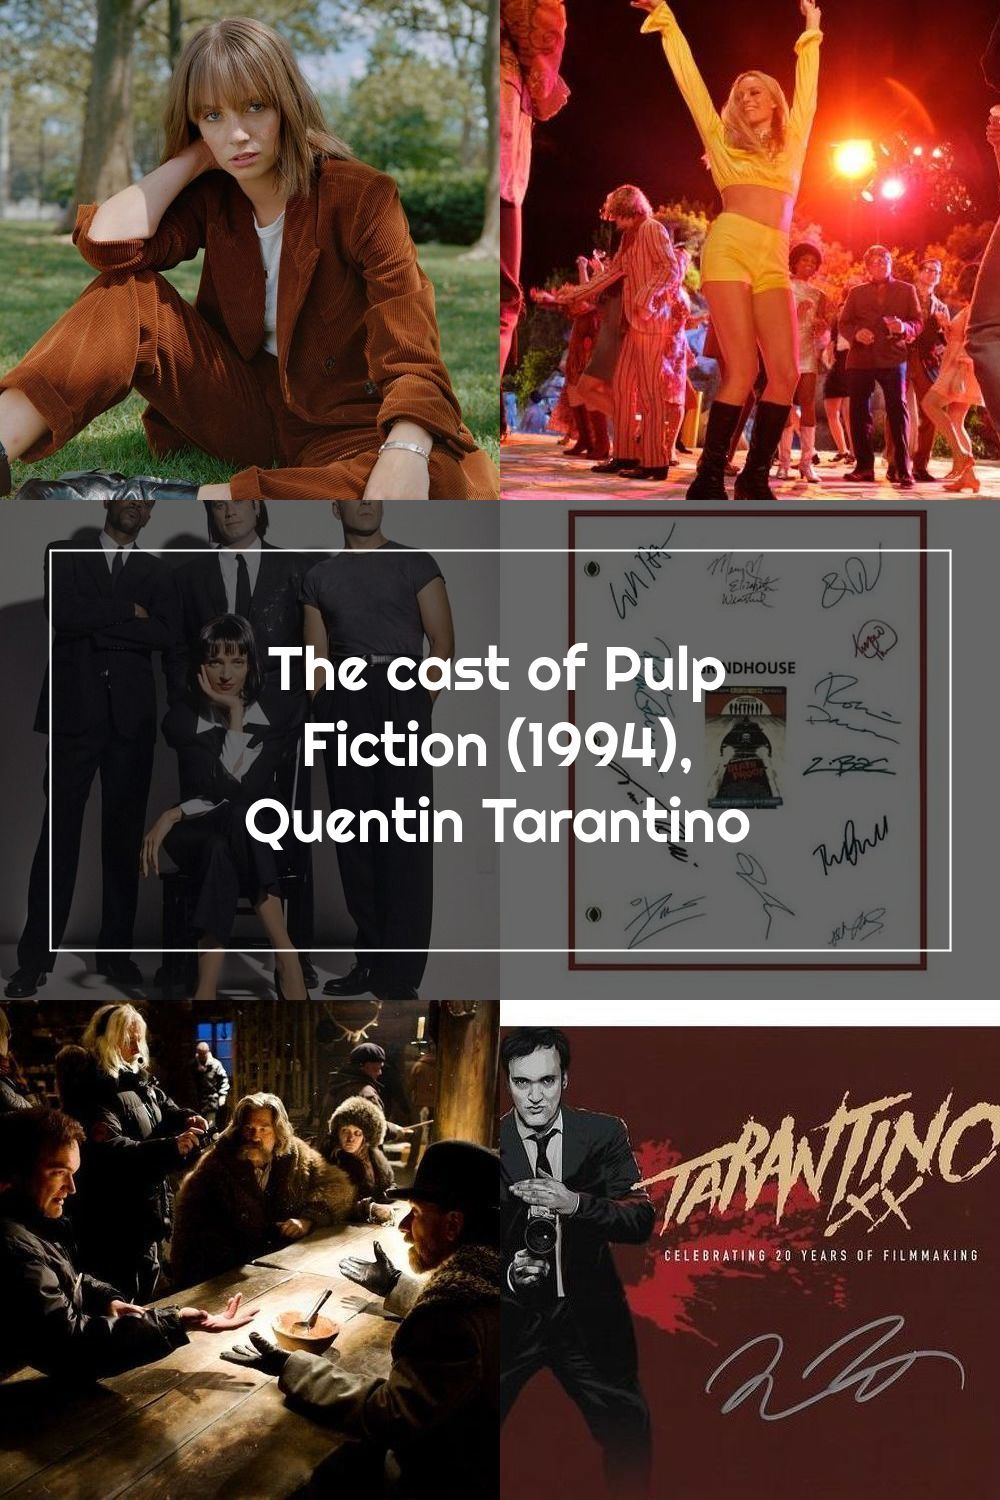 The Cast Of Pulp Fiction 1994 Quentin Tarantino In 2020 Pulp Fiction Quentin Tarantino Fiction